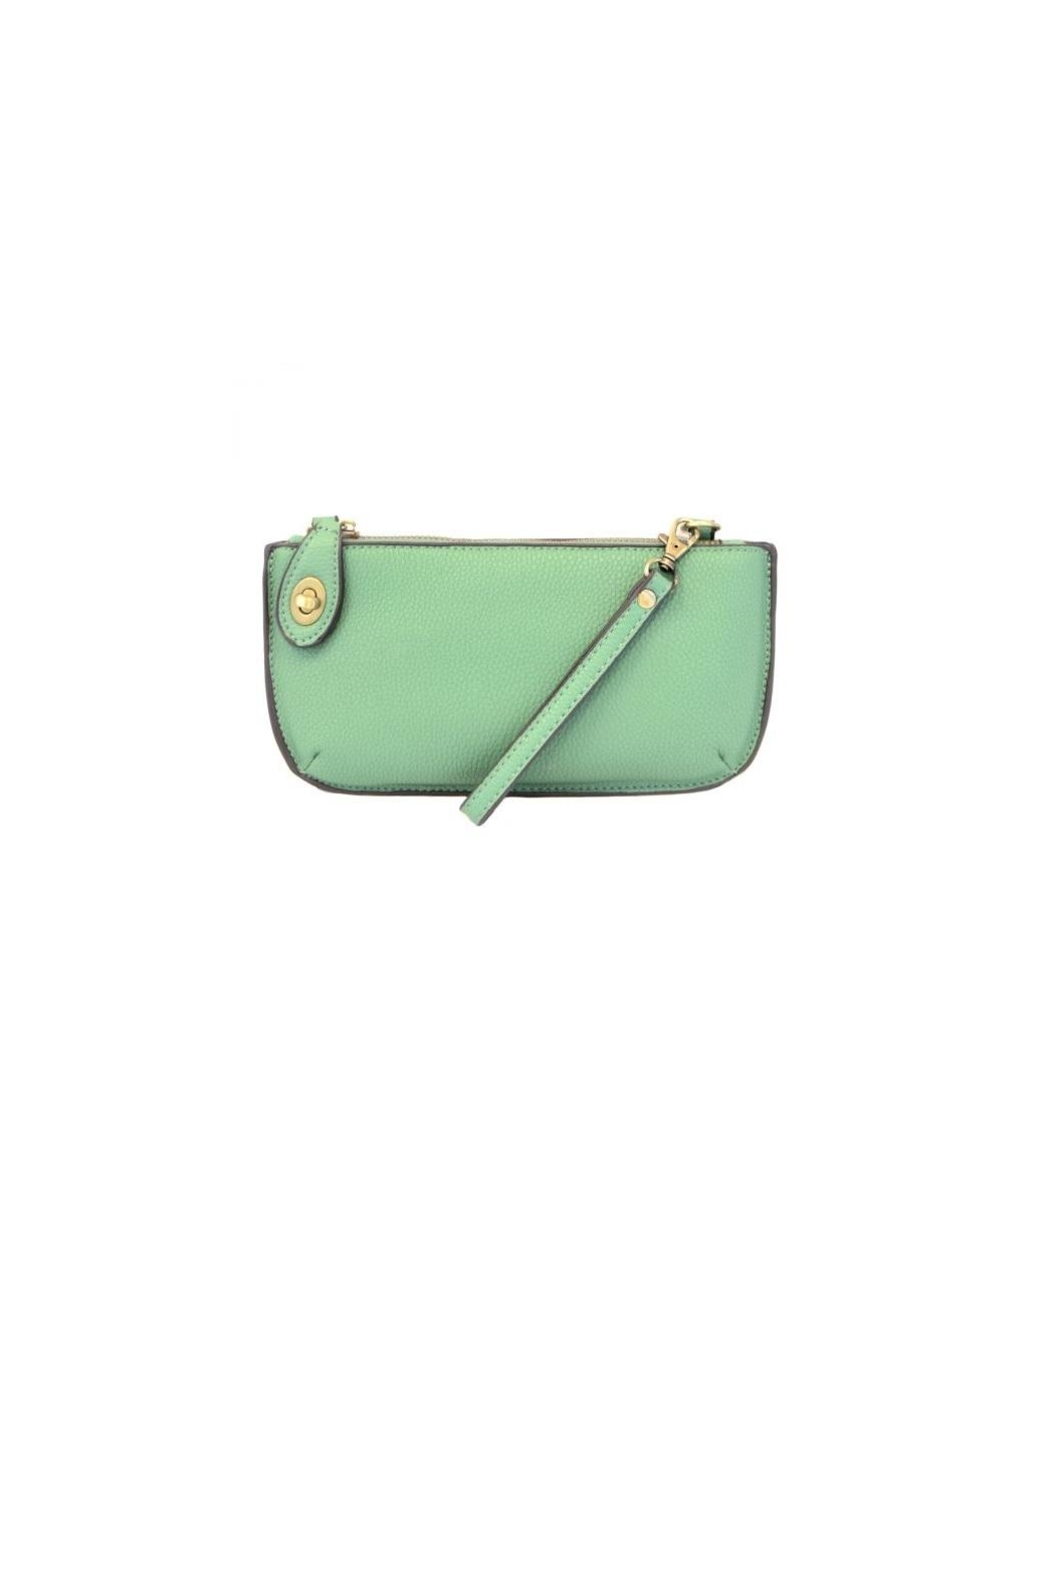 Joy Accessories Green Wristlet Clutch - Main Image